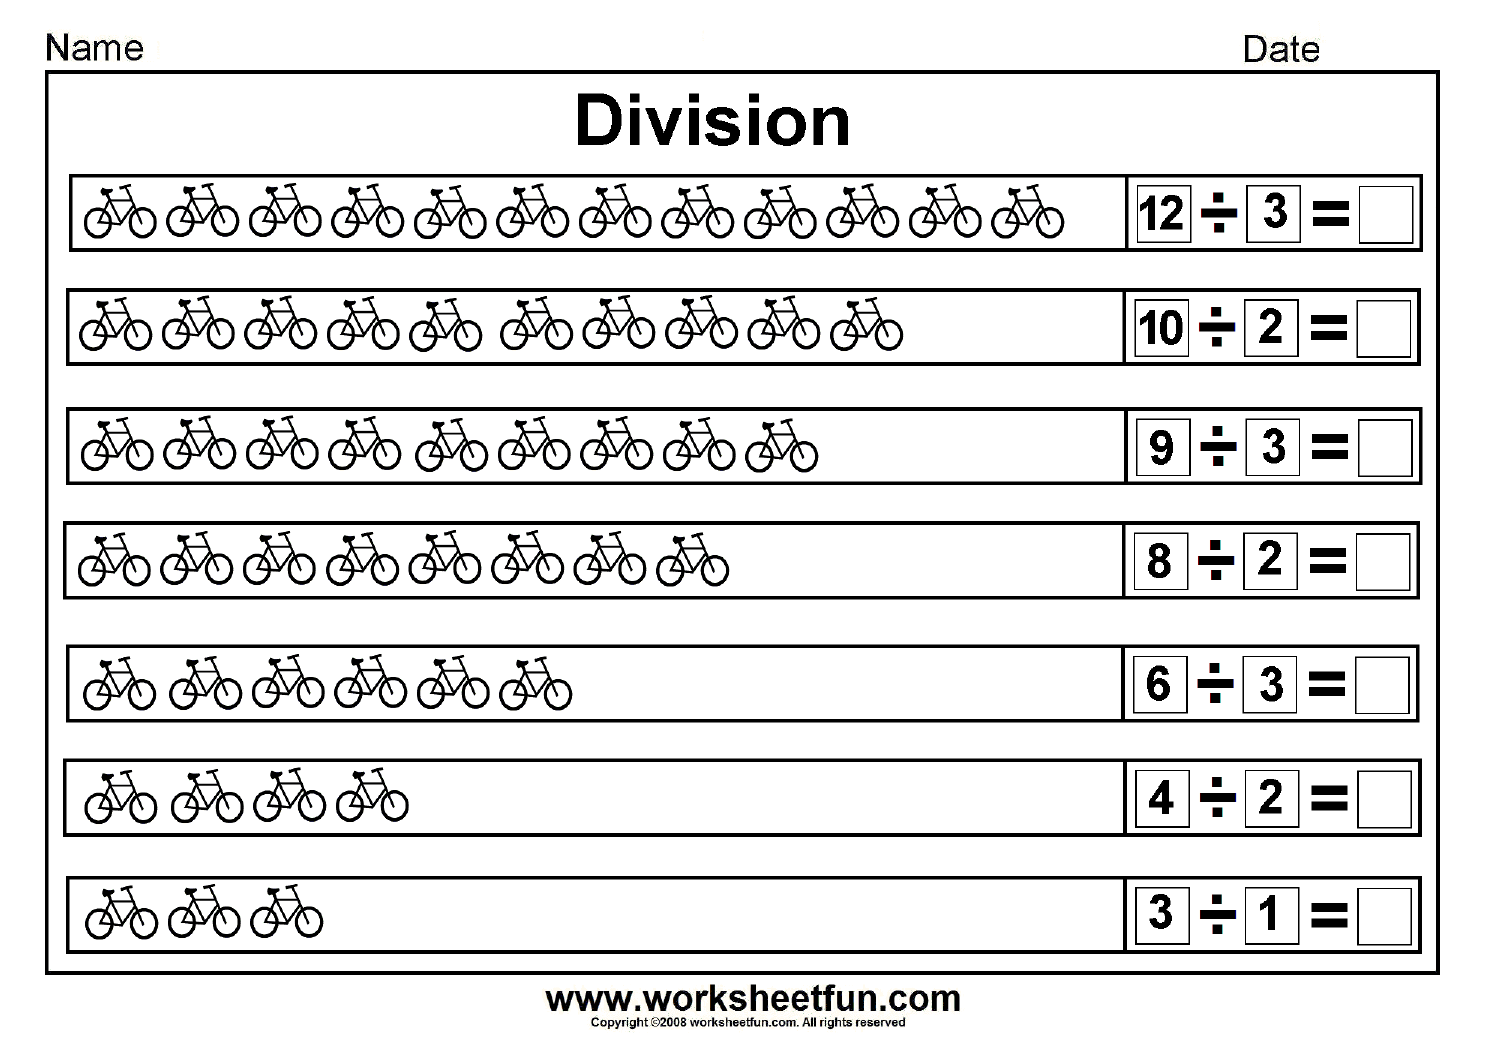 Printables Of Dividing Worksheet Year 2